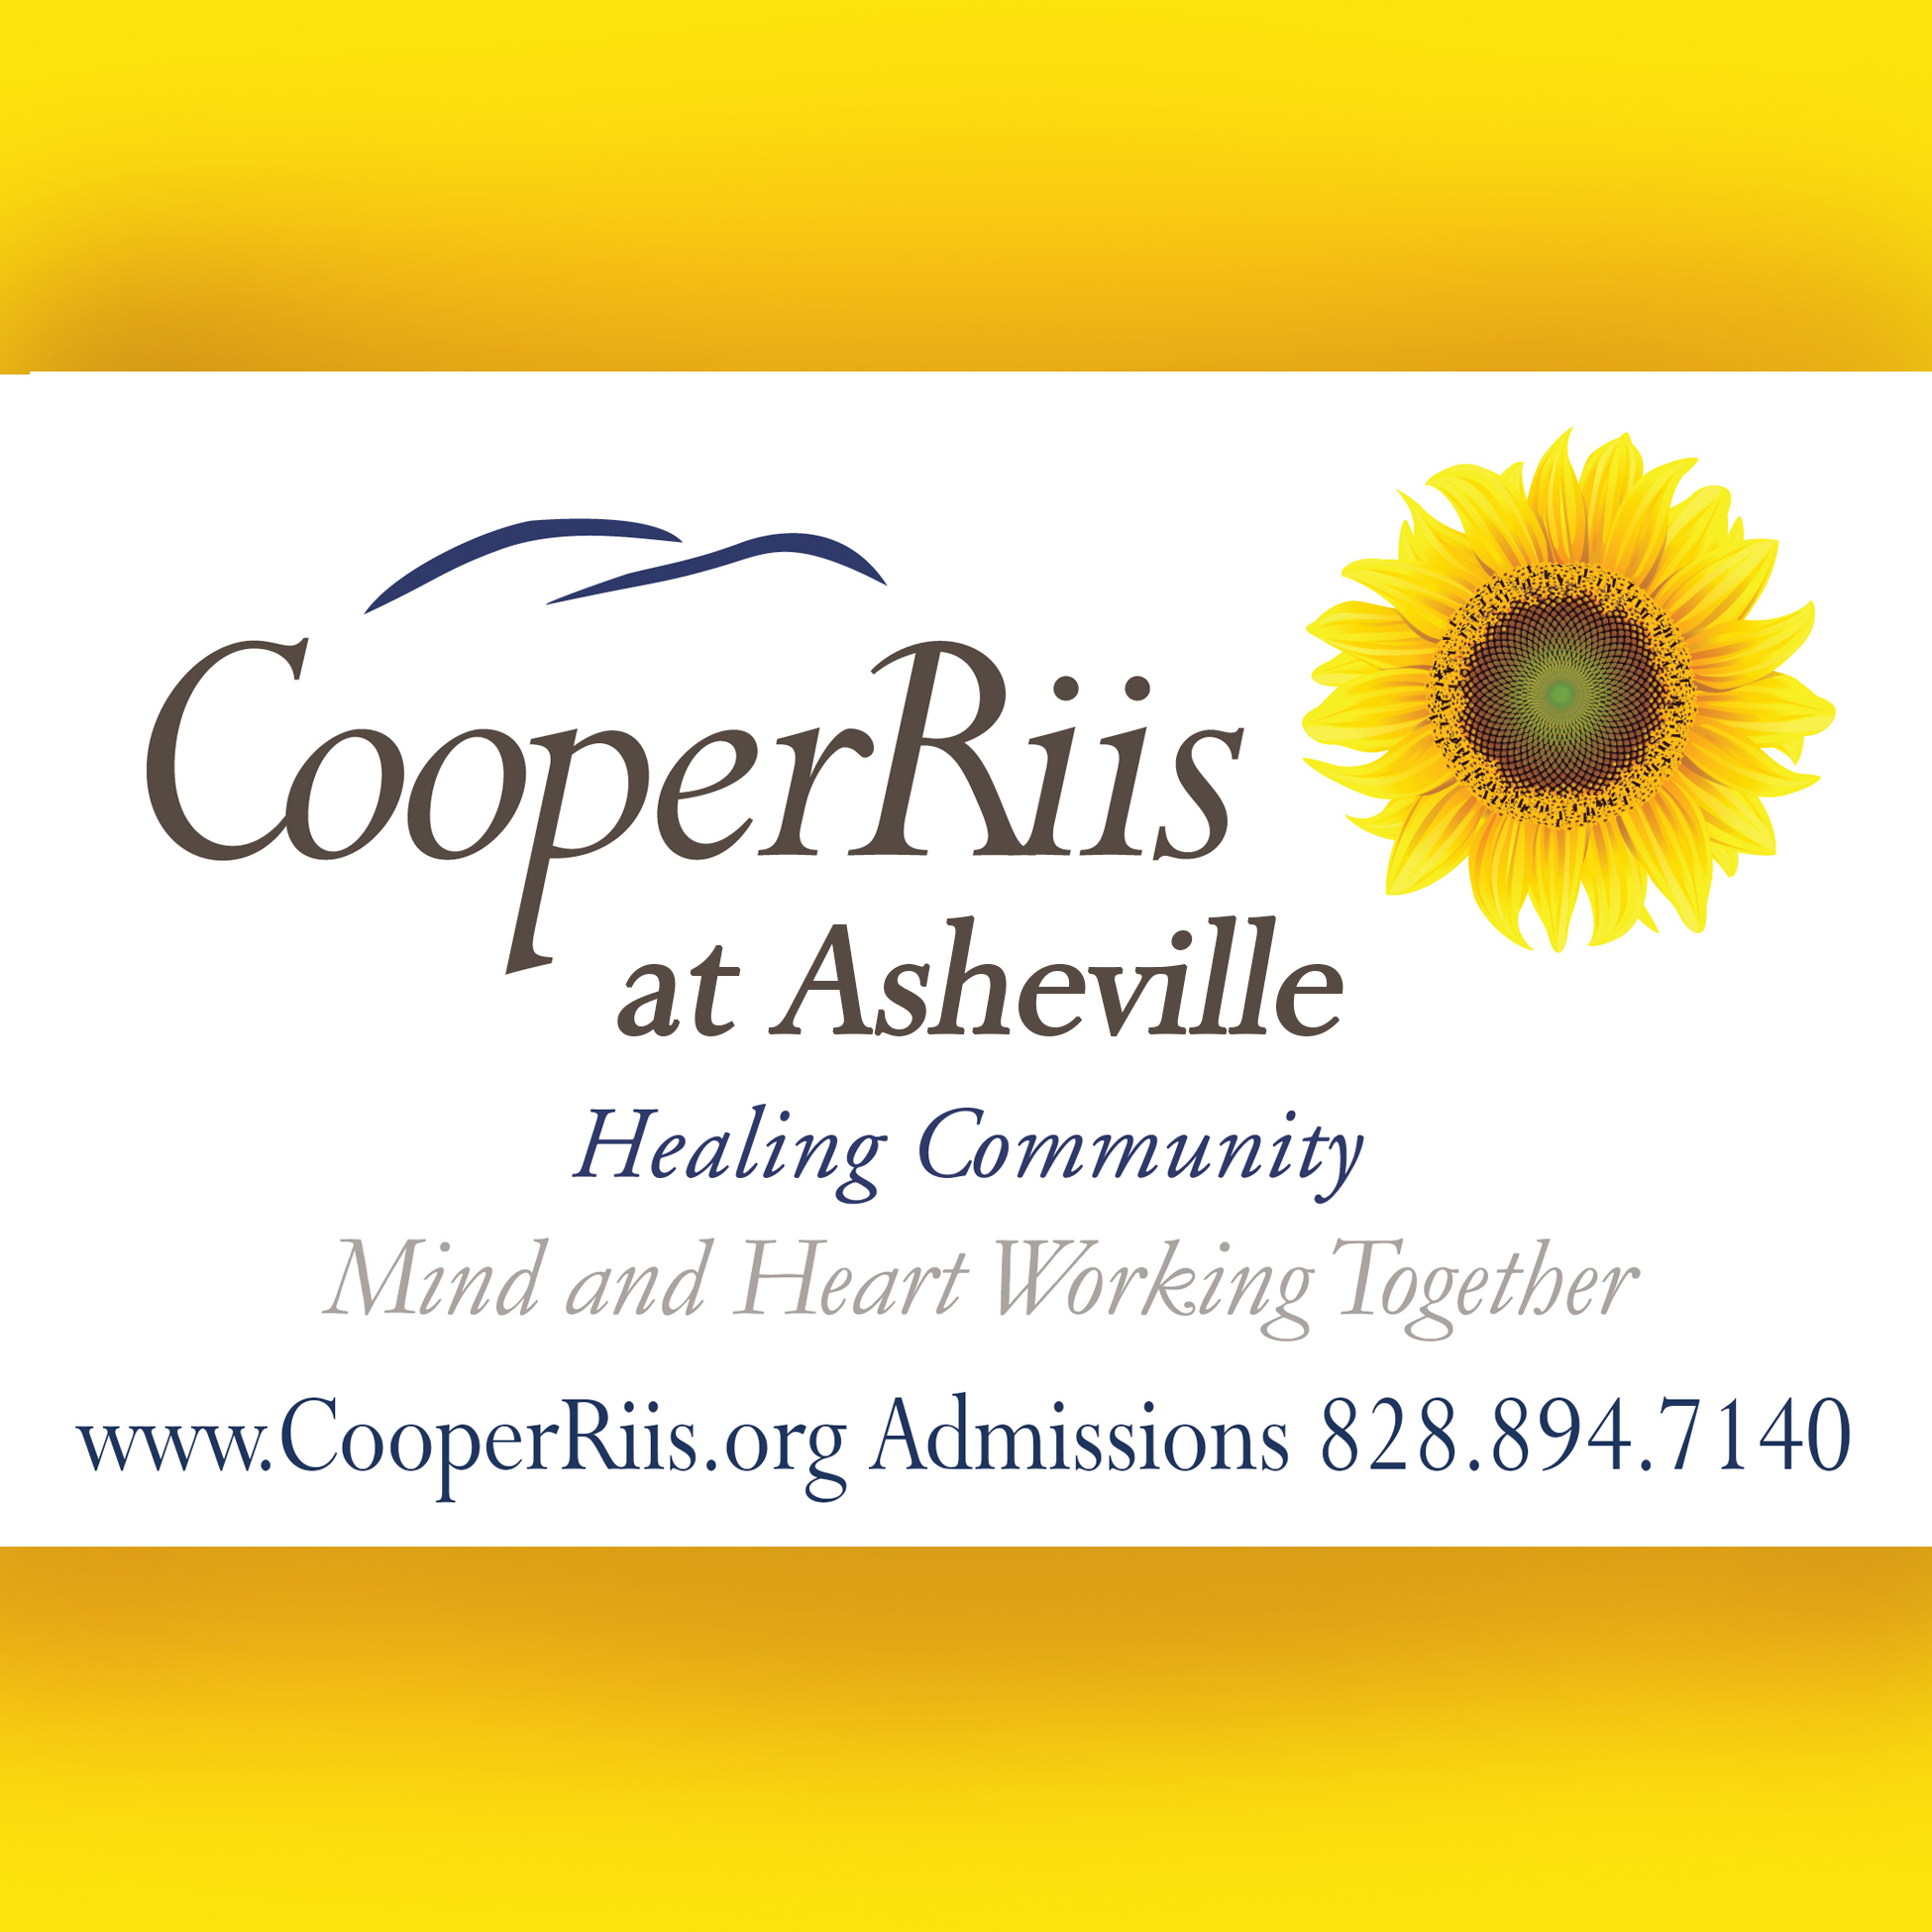 CooperRiis at Asheville logo